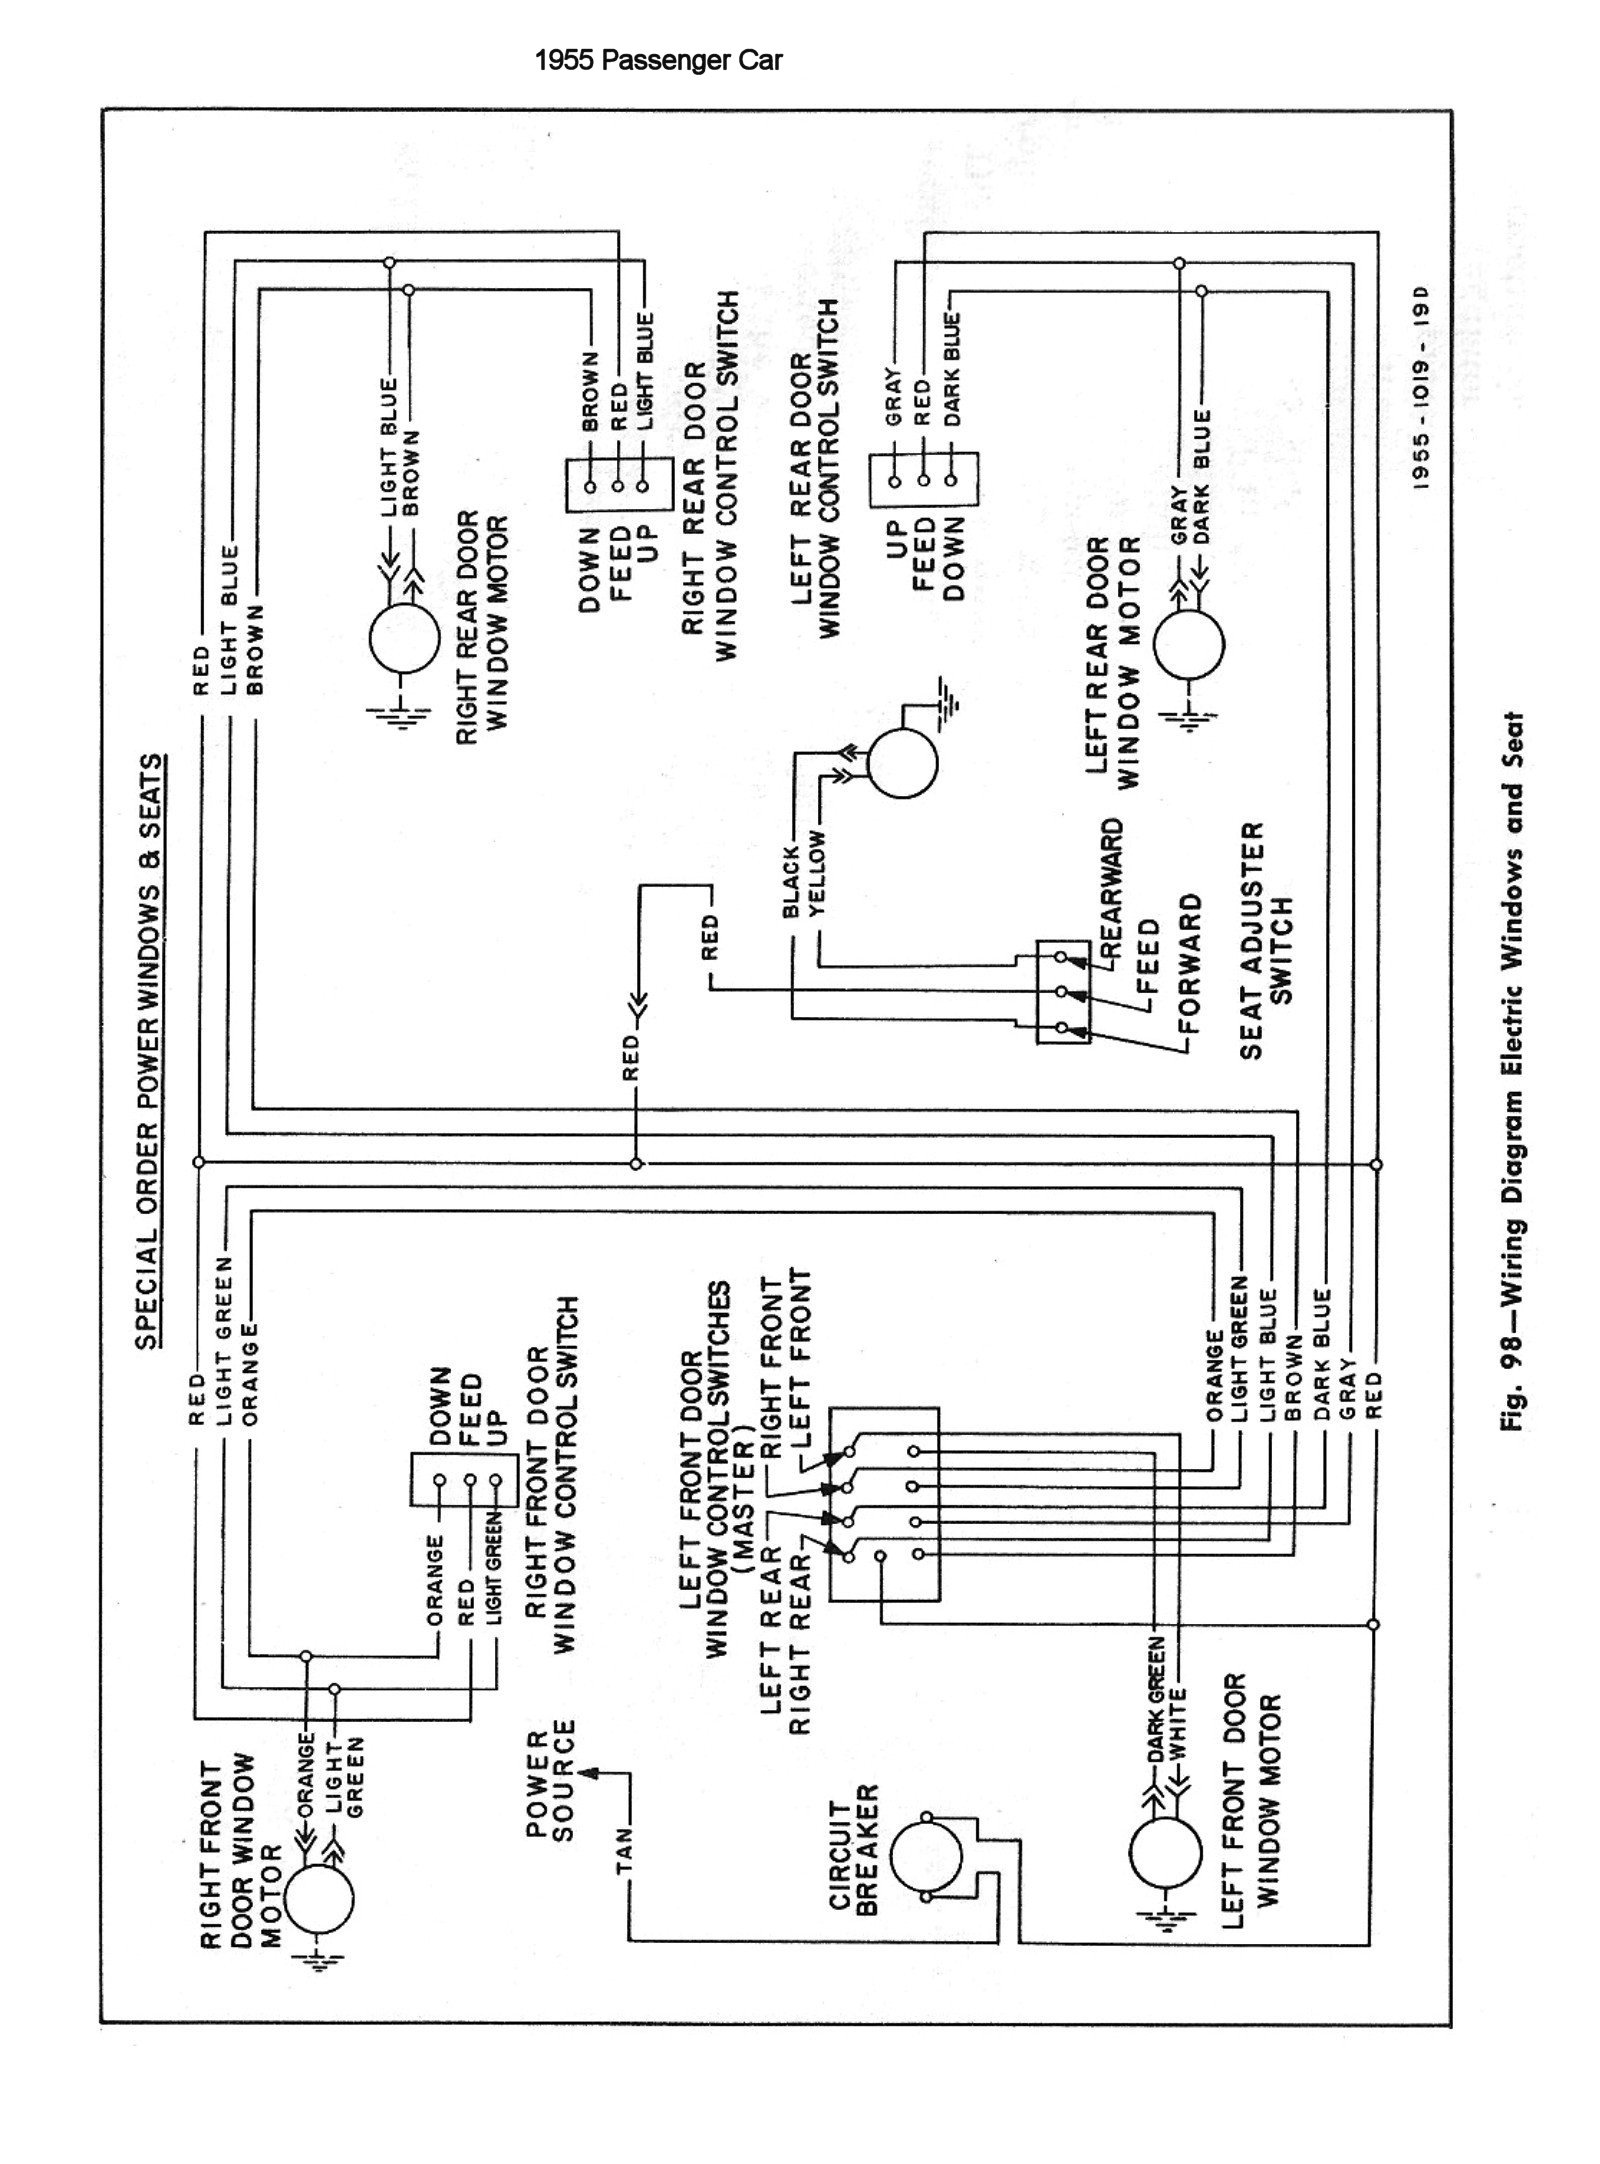 55csm0146 chevy wiring diagrams chevy truck wiring diagram at et-consult.org